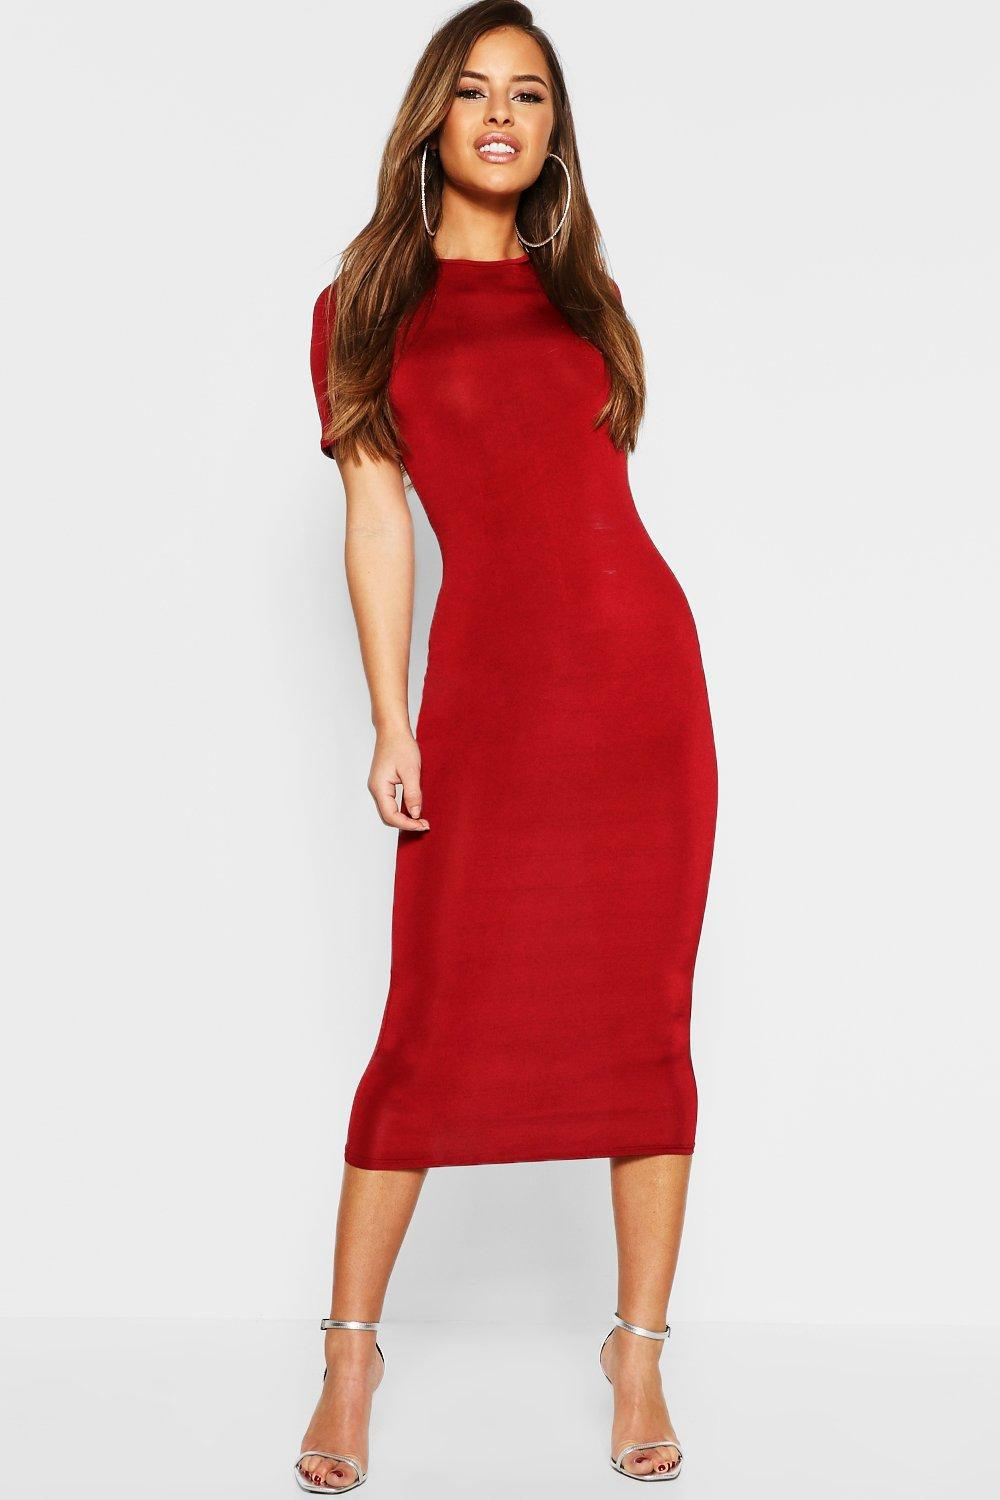 3557c2bfbb4d Lyst - Boohoo Petite Slinky Disco Cap Sleeve Bodycon Dress in Red